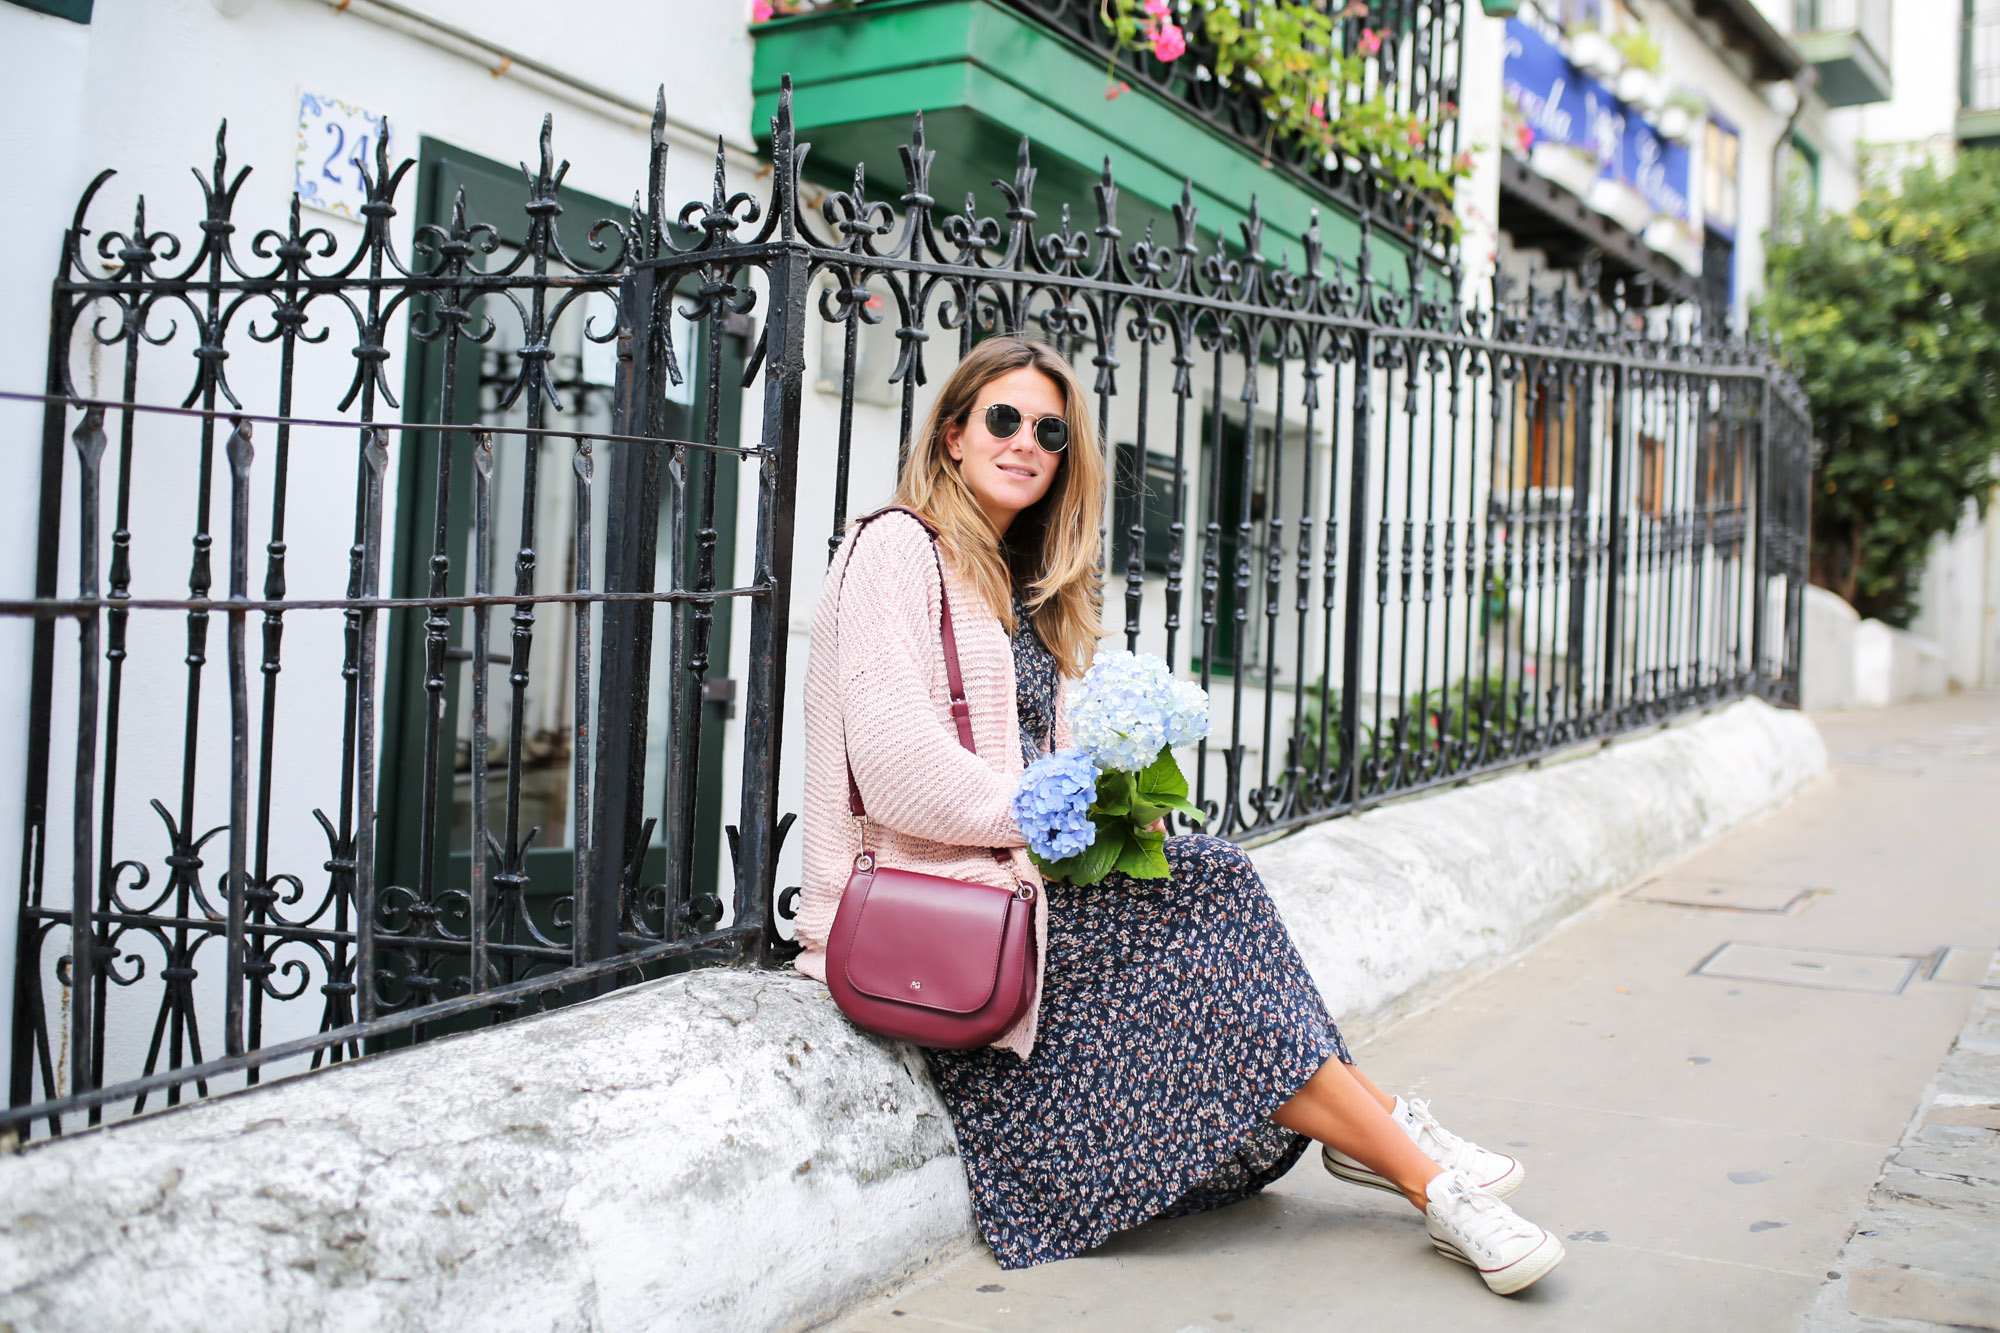 Clochet_streetstyle_fashionblogger_eseoese_flowerprintmididress_converse_americanvintage_pinkknit